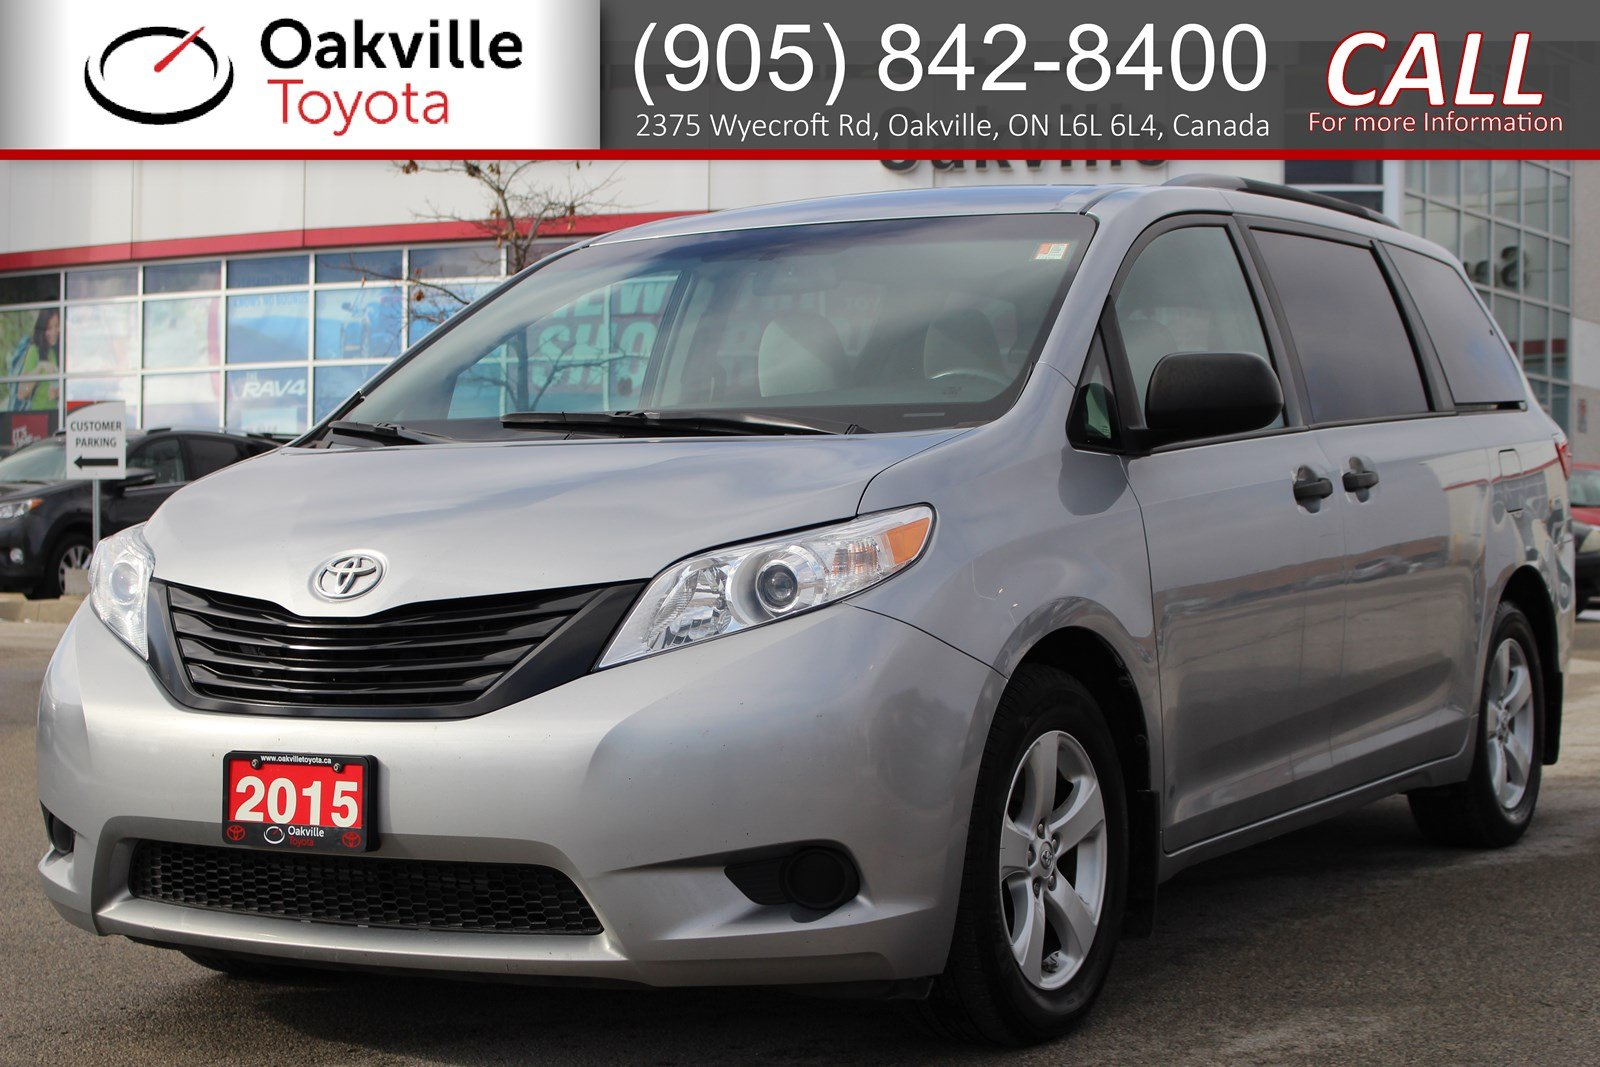 Certified Pre-Owned 2015 Toyota Sienna FWD with Clean Carfax and Single Owner